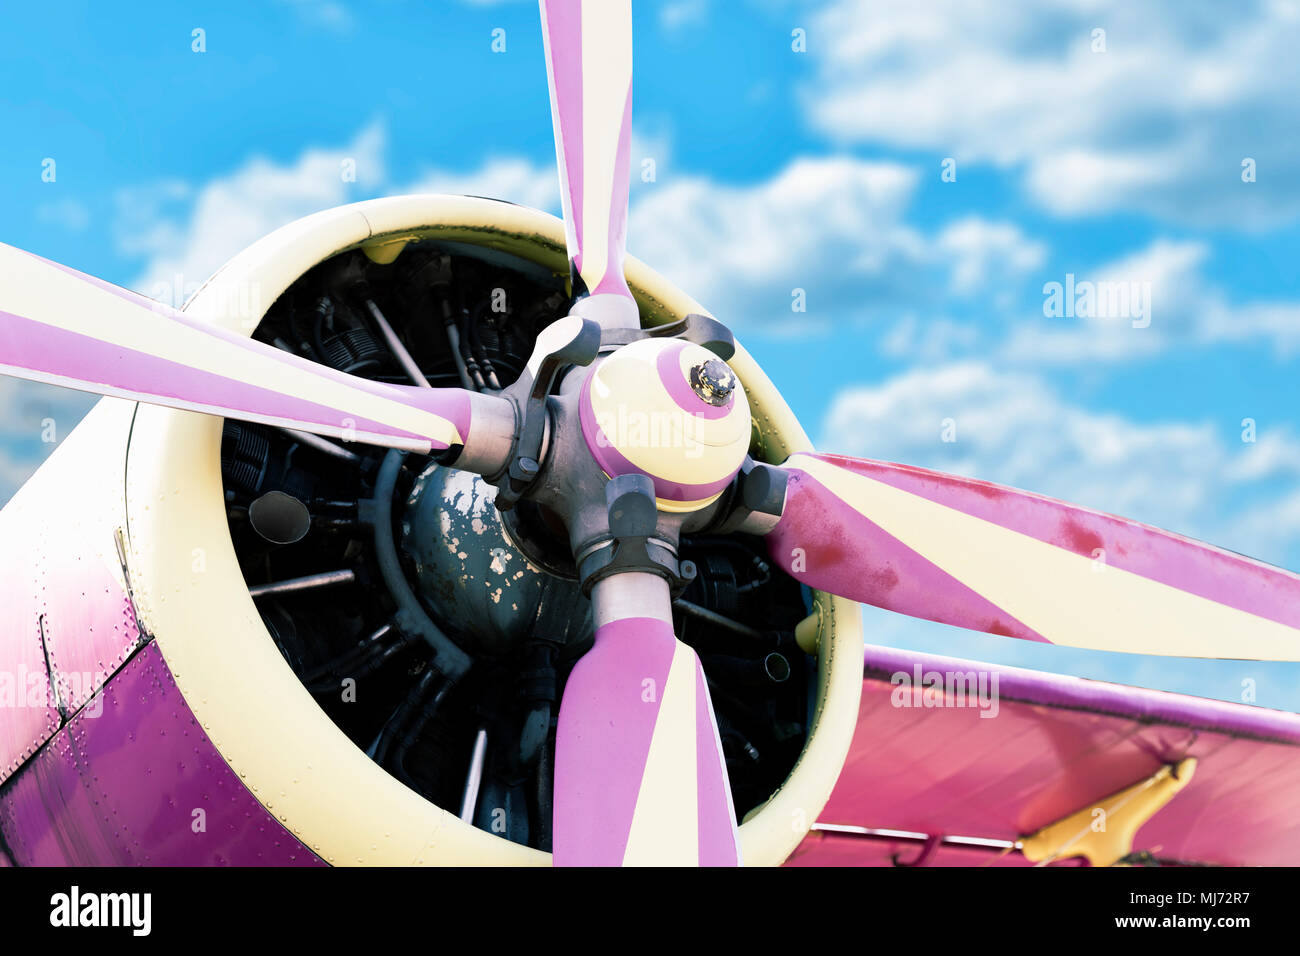 An old obsolete aircraft propeller on a bright day - Stock Image